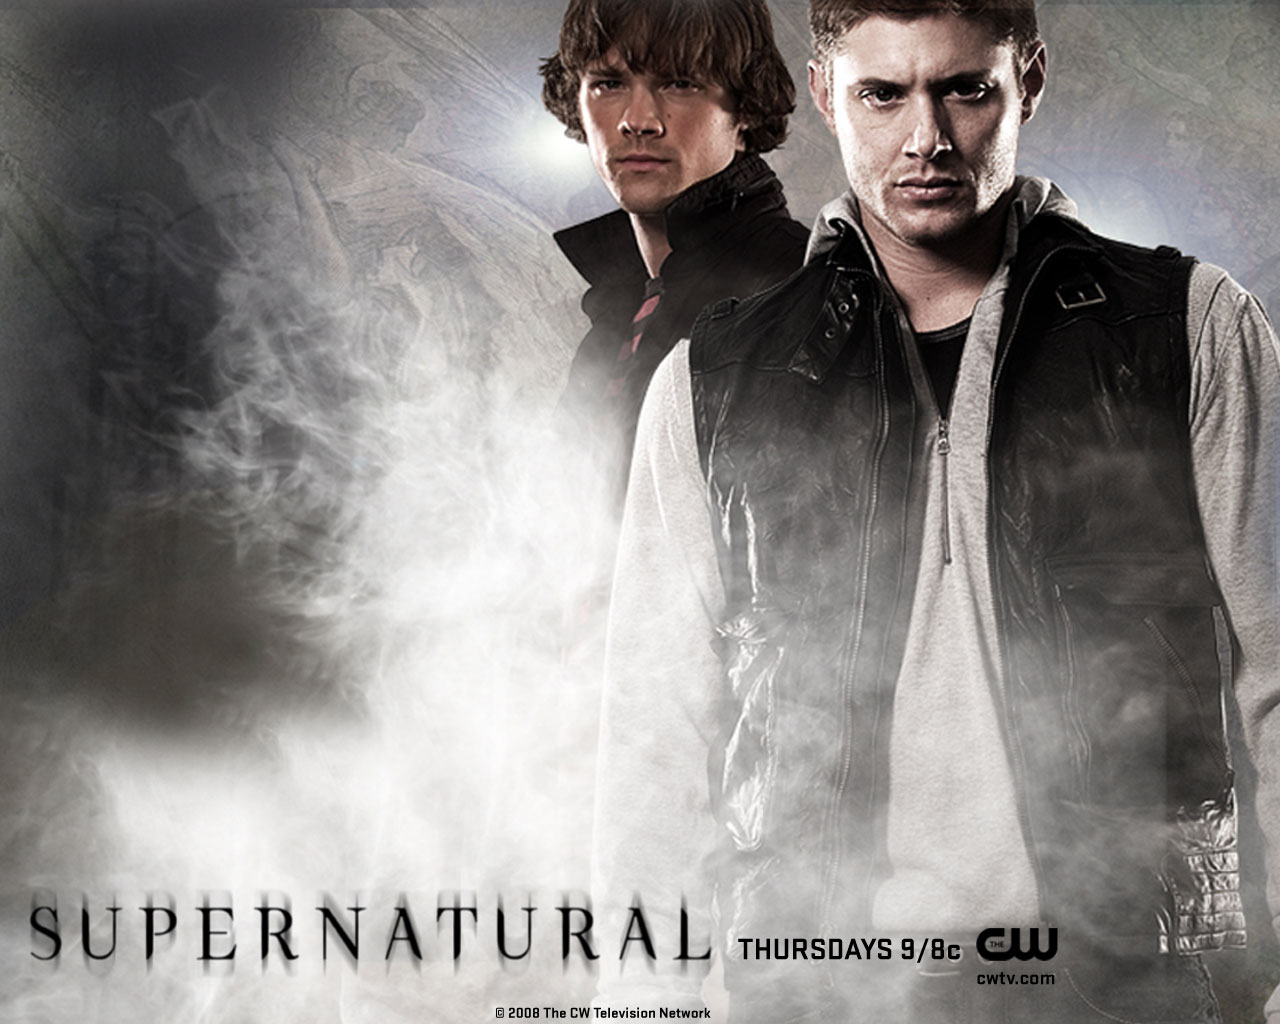 http://1.bp.blogspot.com/_IeoCDtDWgMk/TMG-JCwhmCI/AAAAAAAAAn0/Iqrpxi6kAYM/s1600/3363-tv_movies_supernatural_wallpaper.jpg